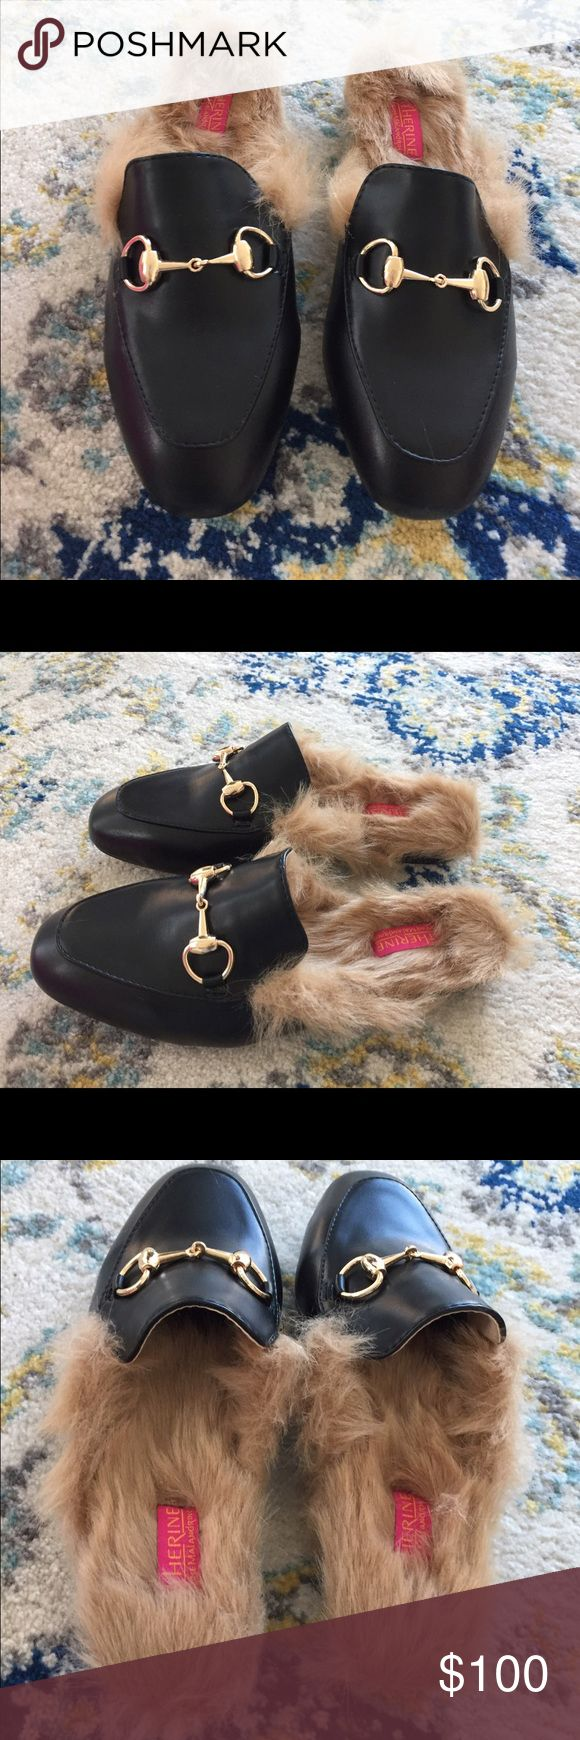 Catherine Malandrino Black Faux Fur Lined Slippers Catherine Malandrino Black Faux Fur Lined Slippers Horsebit Mules Gucci Princeton Style. Catherine Malandrino Shoes Mules & Clogs